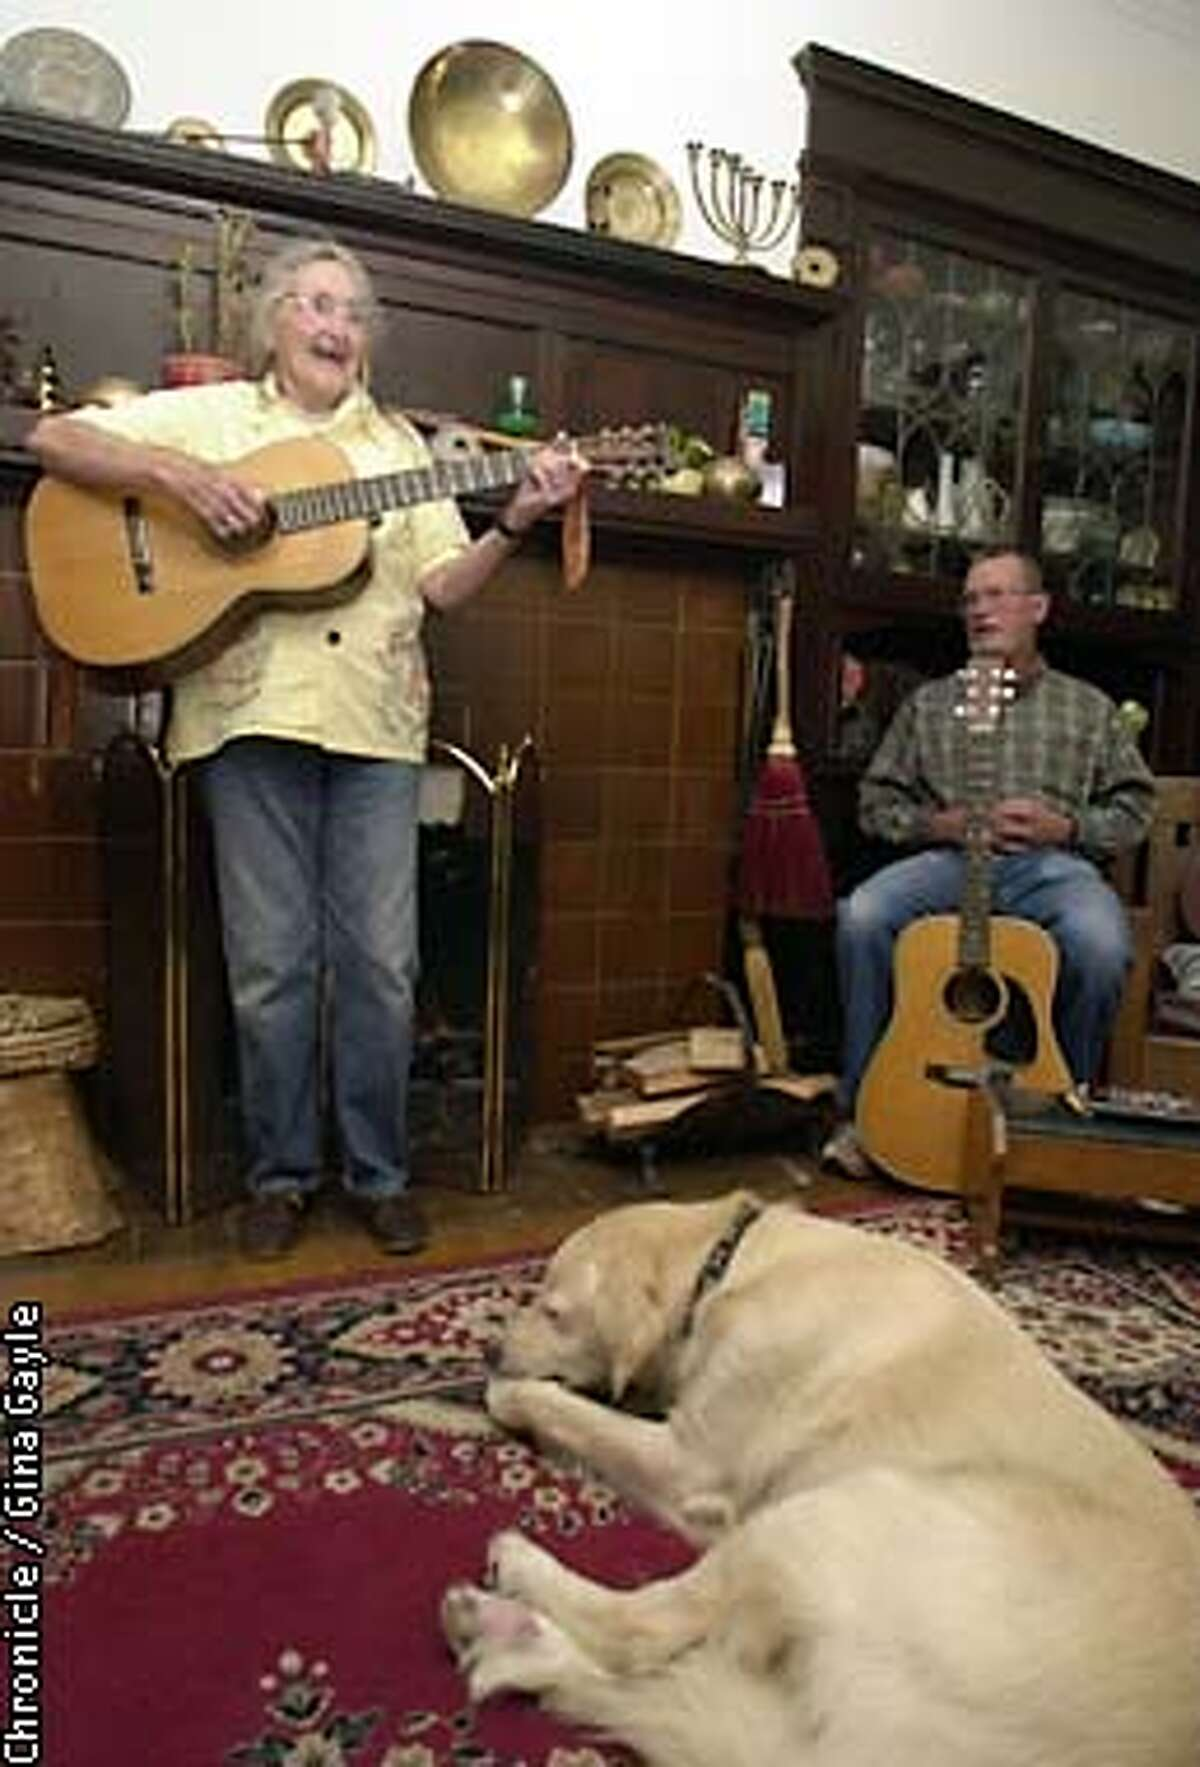 EBPETRICc-C-06SEP02-SF-GG-Folk singer Faith Petric,86 soon to be 87, gets a kick from the song she and the people in the sing-a-long room jam to. Faith hosts jam sessions for the San Francisco Folk Song Club (please check group name) every other weekend and the sessions go late into the night. Photo by Gina Gayle/The SF Chronicle.